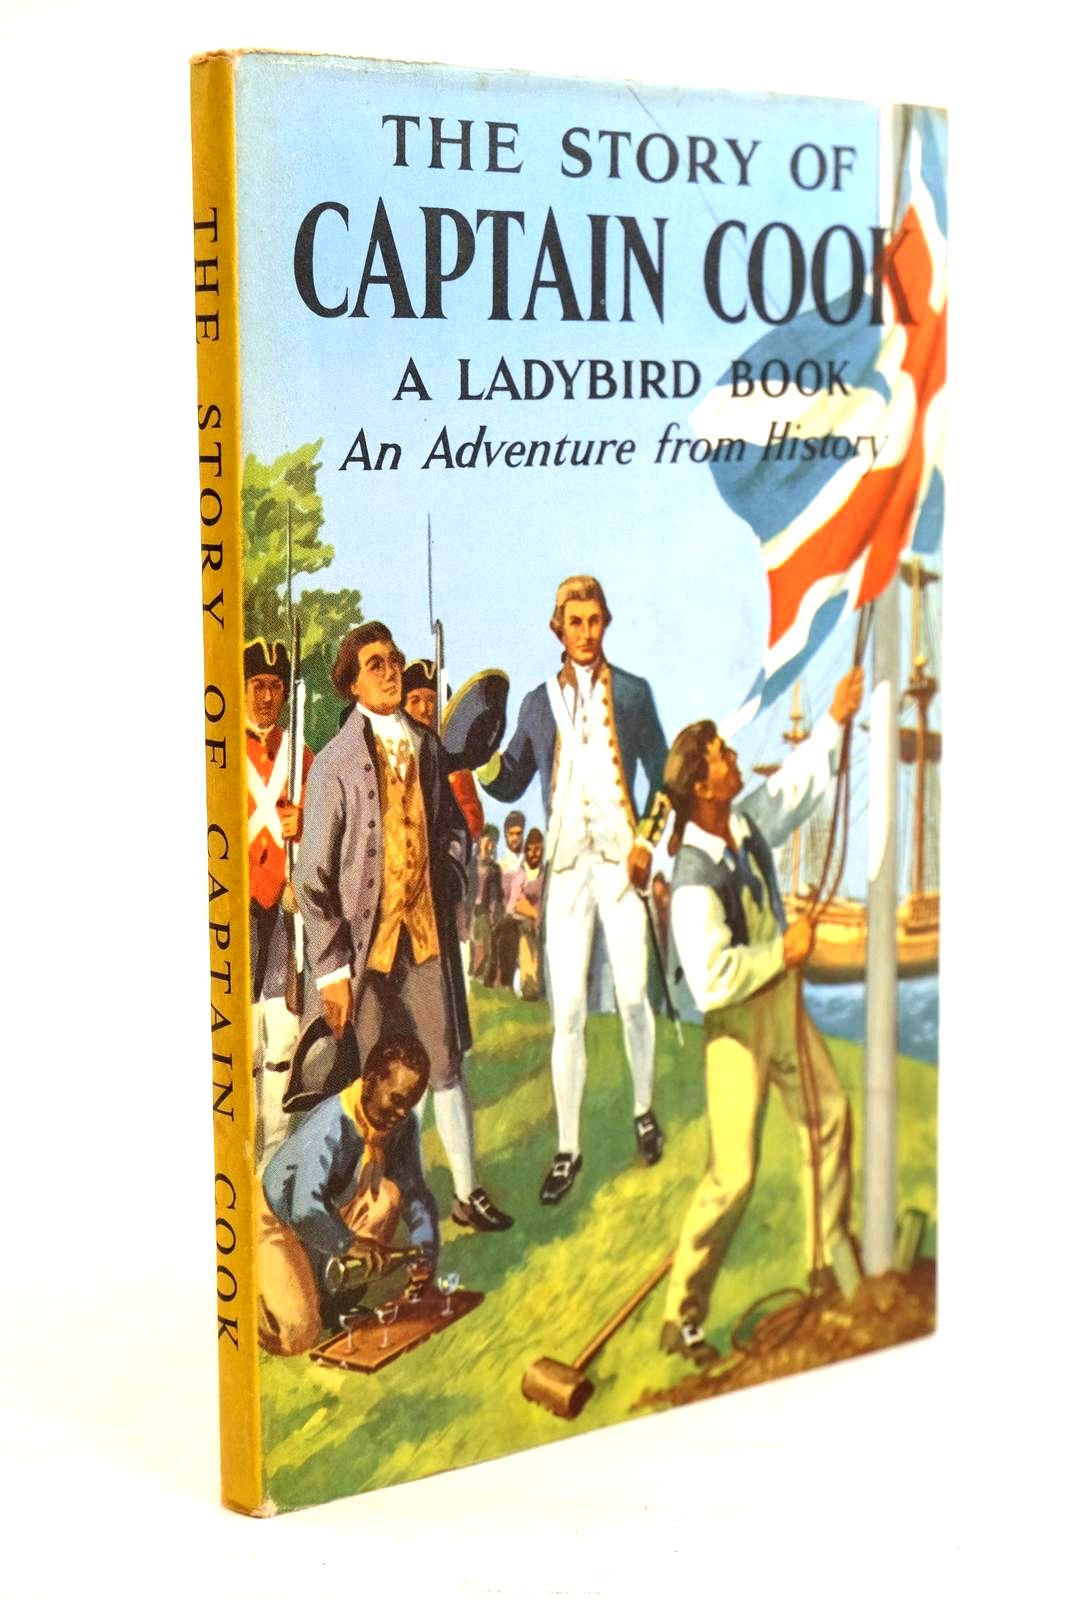 Photo of THE STORY OF CAPTAIN COOK written by Peach, L. Du Garde illustrated by Kenney, John published by Wills & Hepworth Ltd. (STOCK CODE: 1320623)  for sale by Stella & Rose's Books